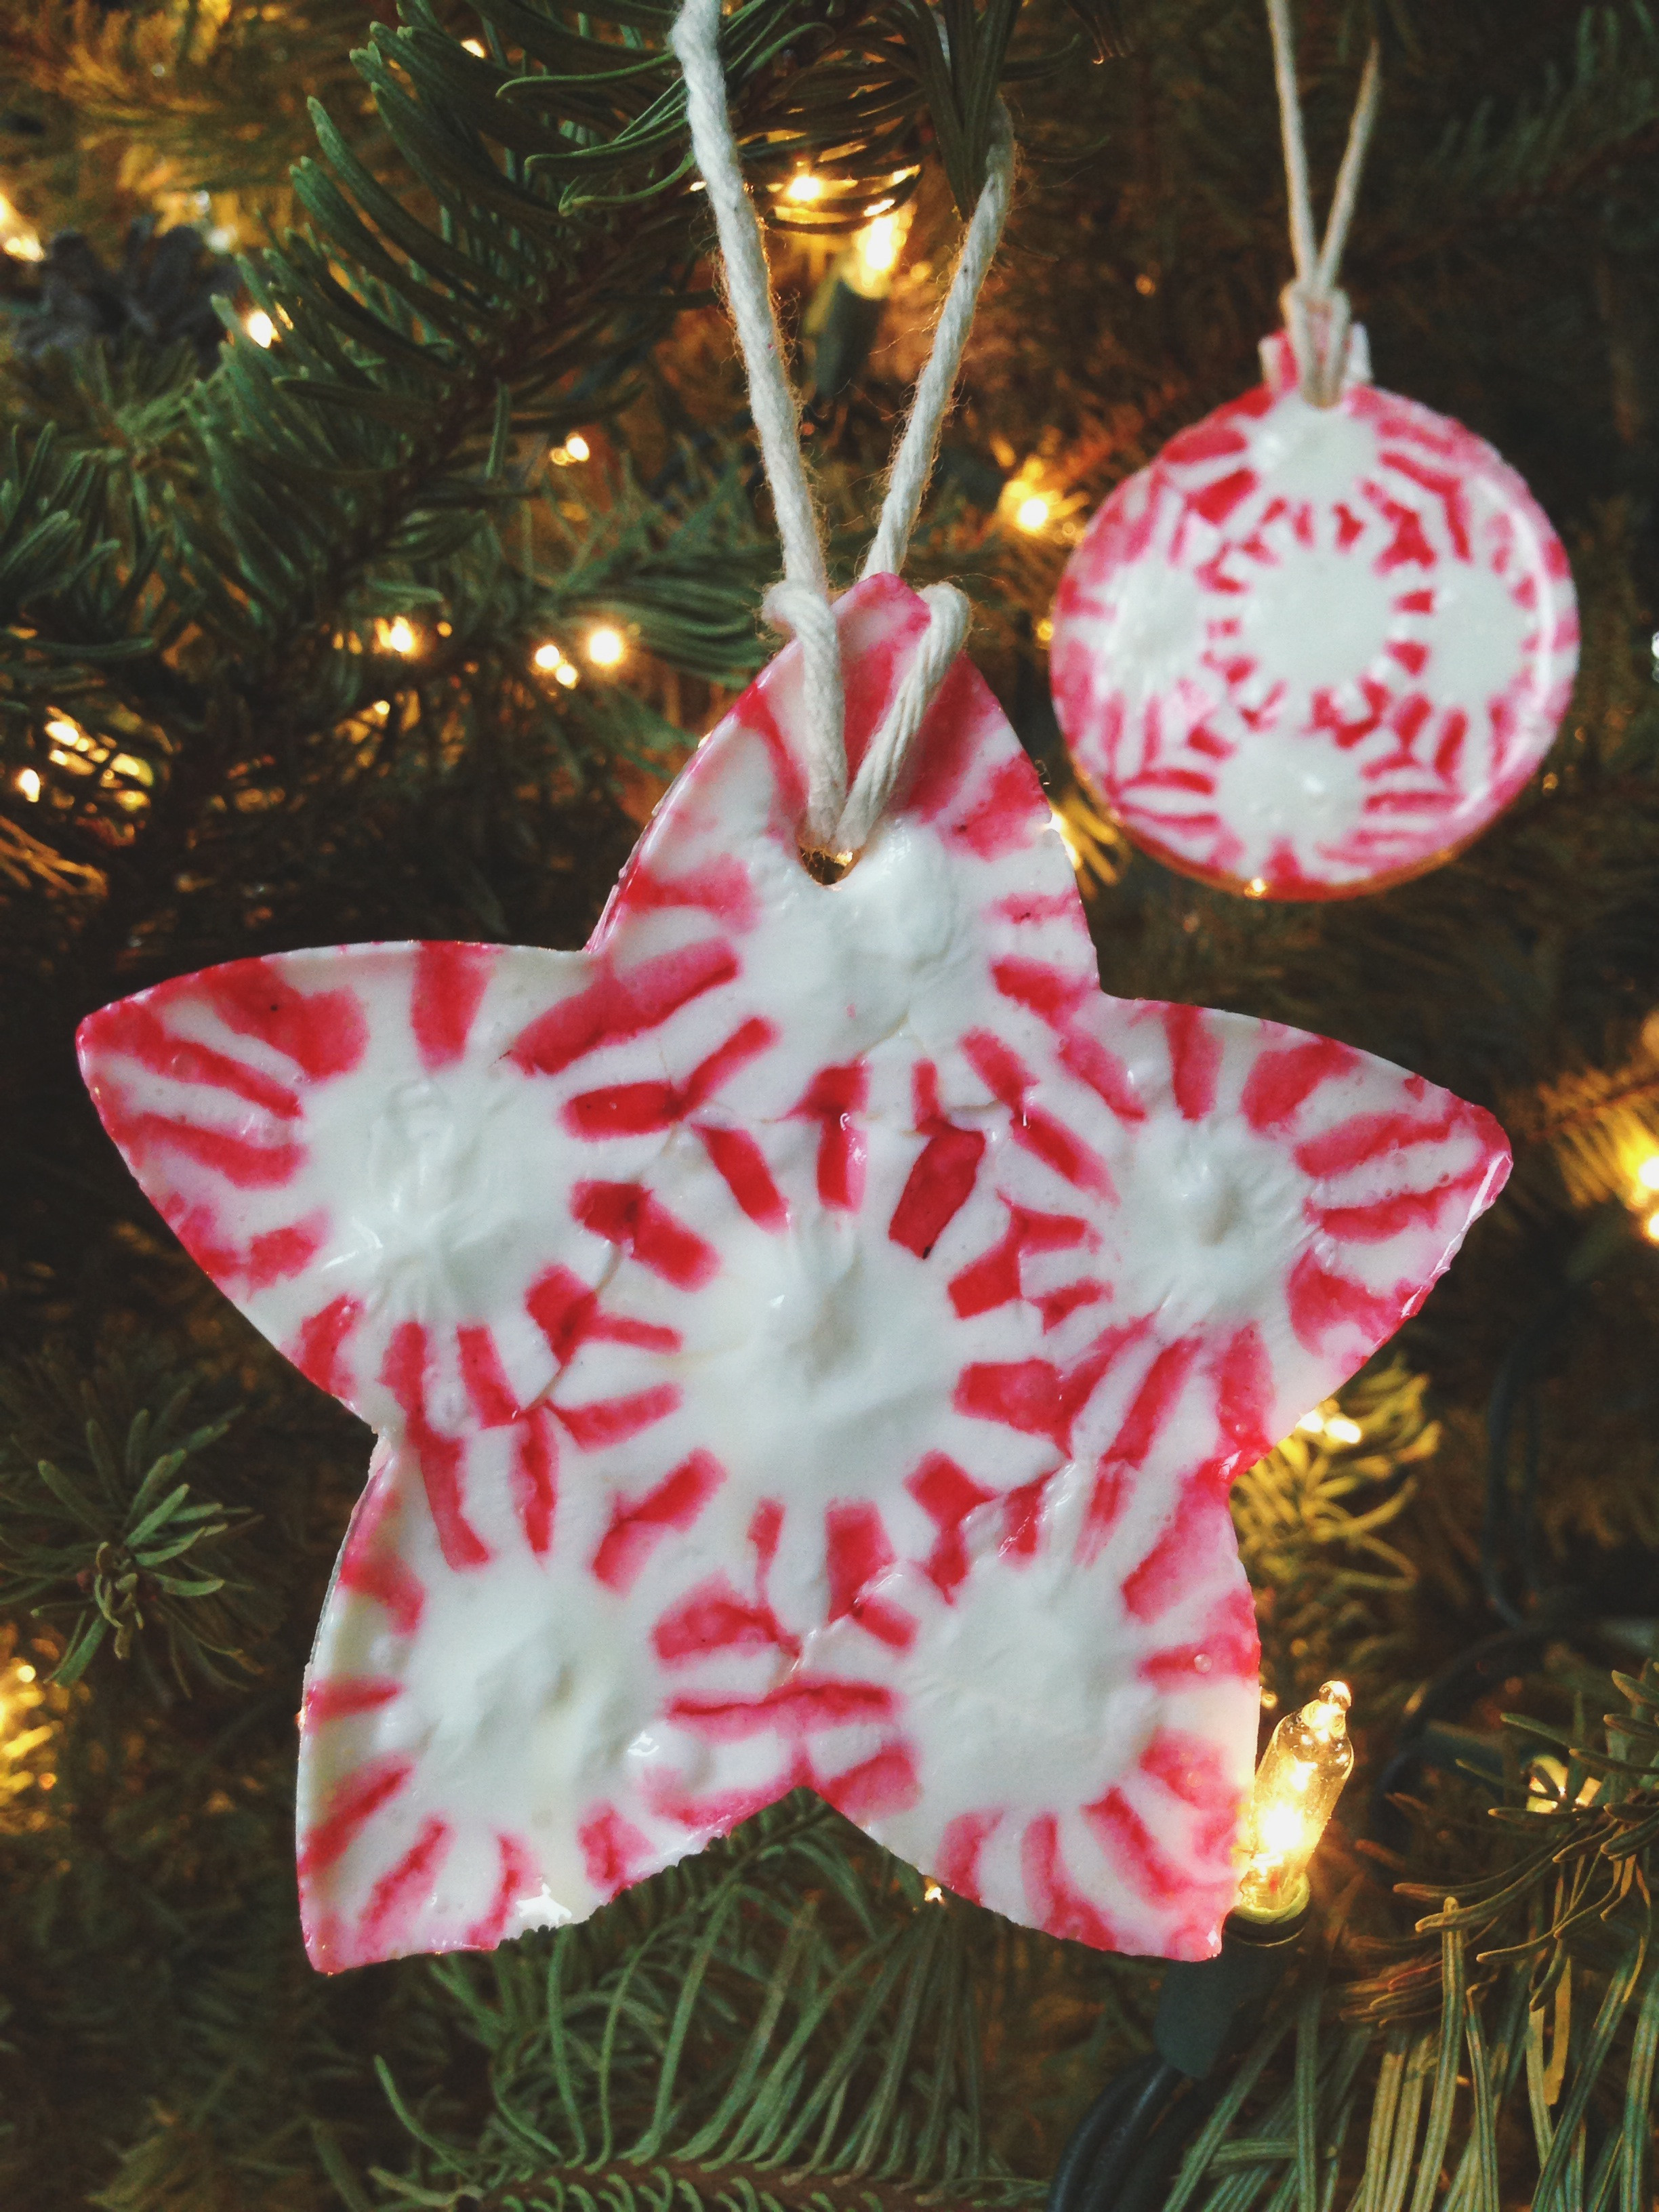 Peppermint Candy Christmas Ornaments  25 Beautiful Handmade Ornaments